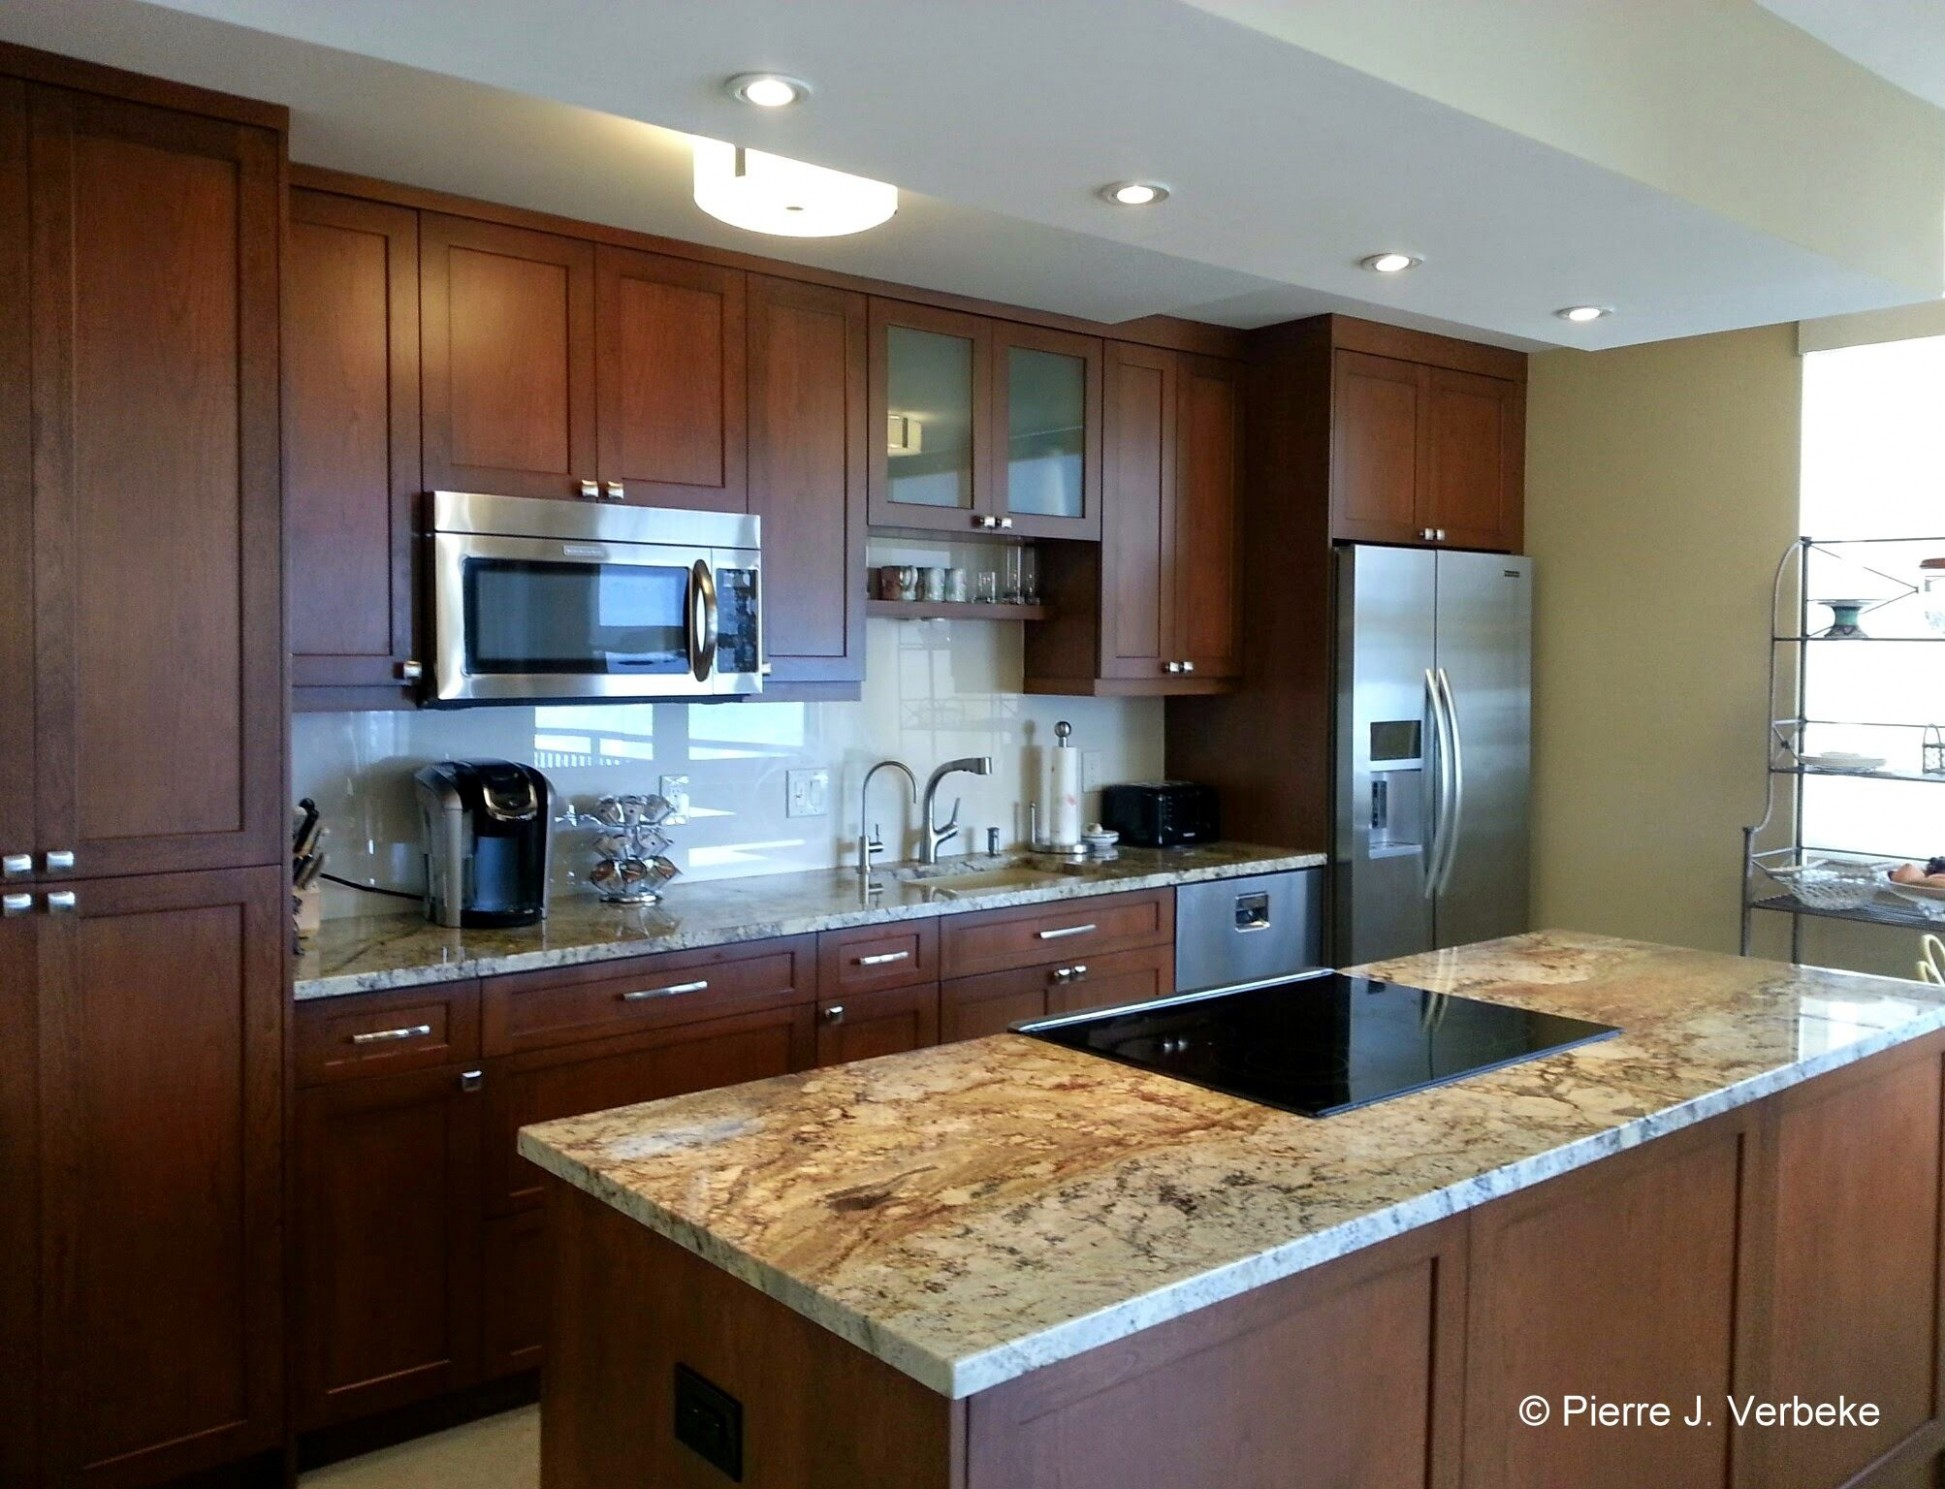 WHITEHALL Unit 12-E: The stylish new Kitchen features extra tall  - Whitehall Kitchen Cabinets